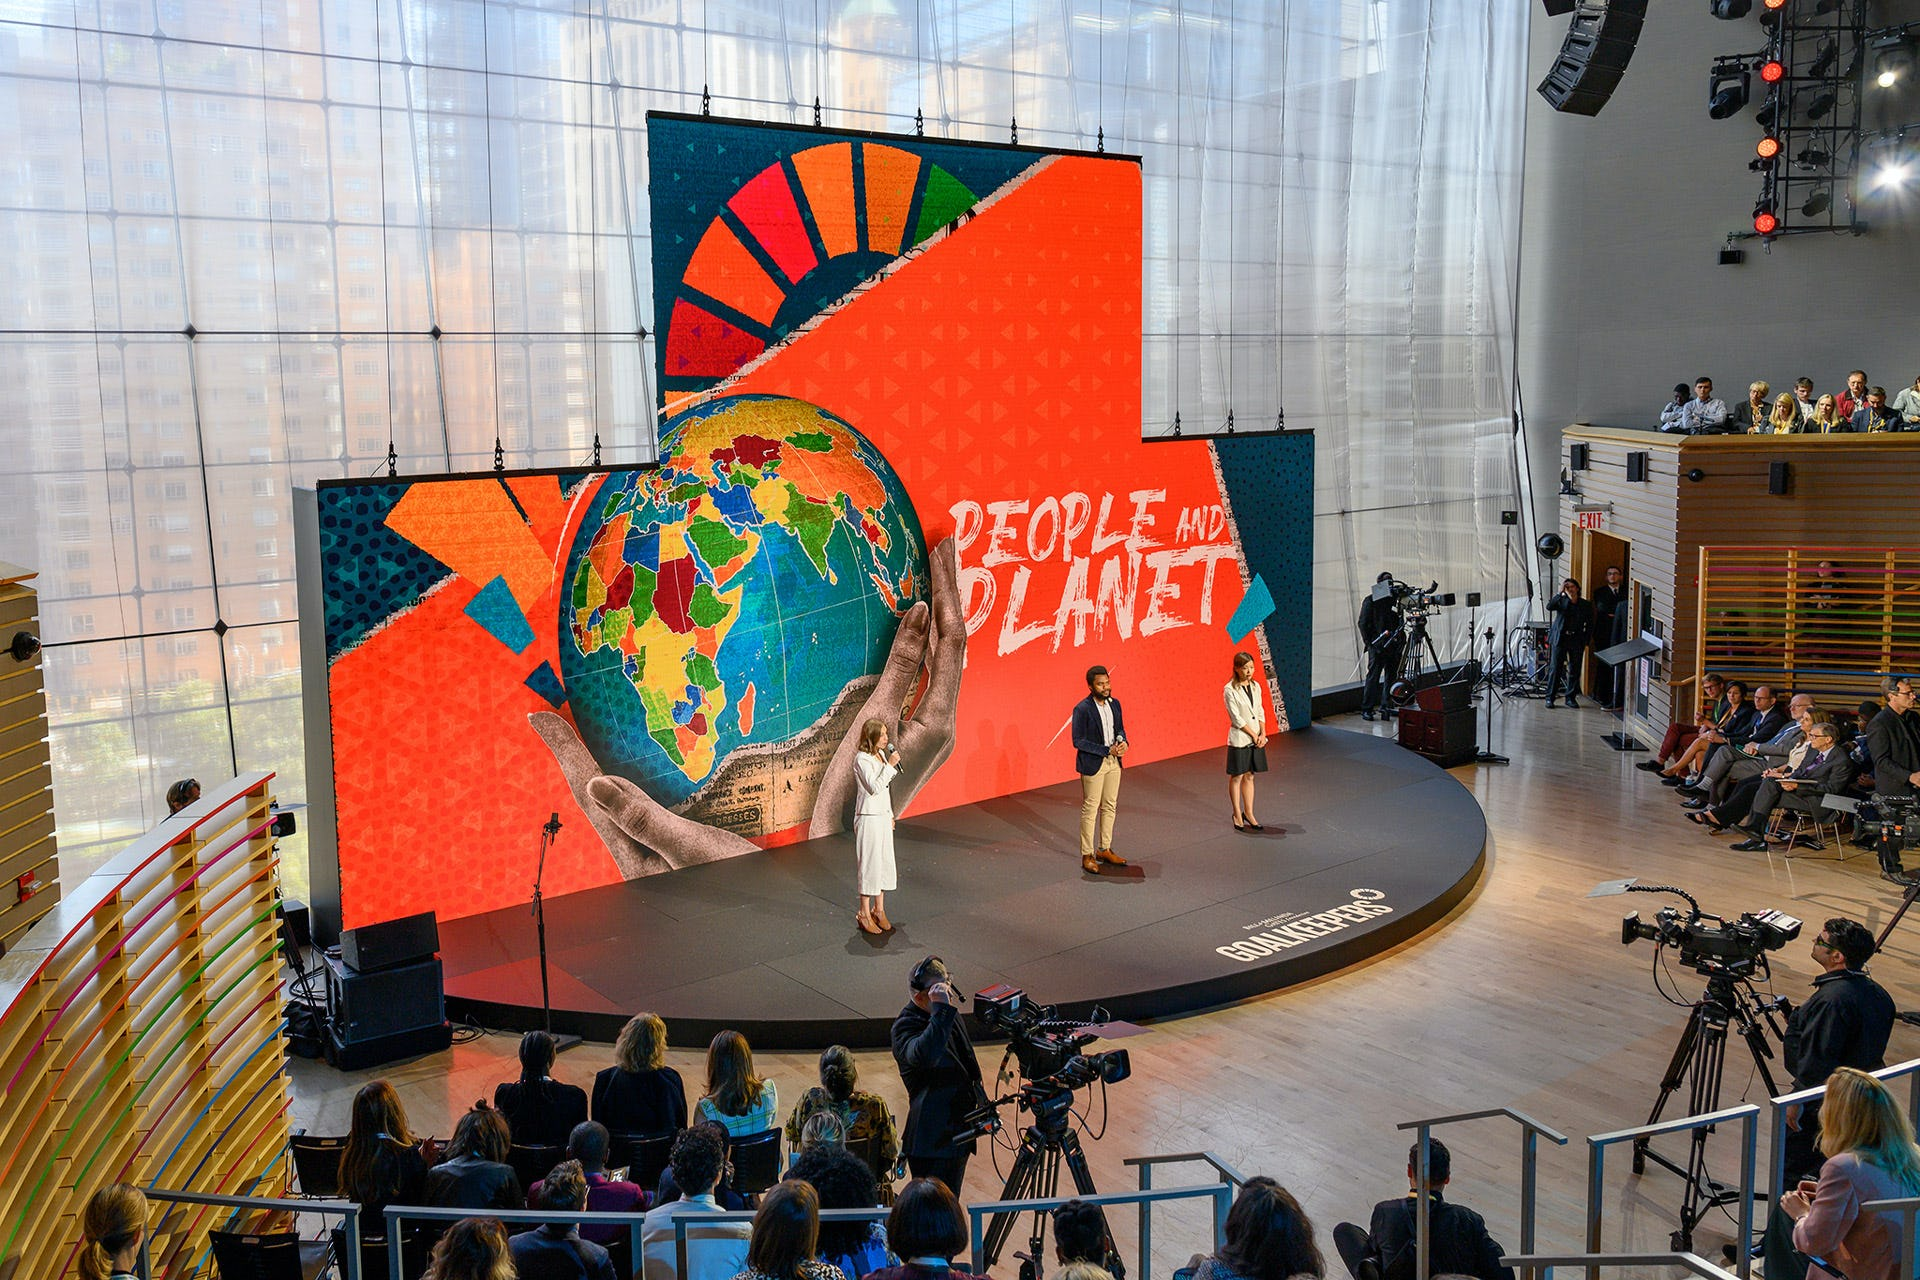 Goalkeepers 2019 people and planet